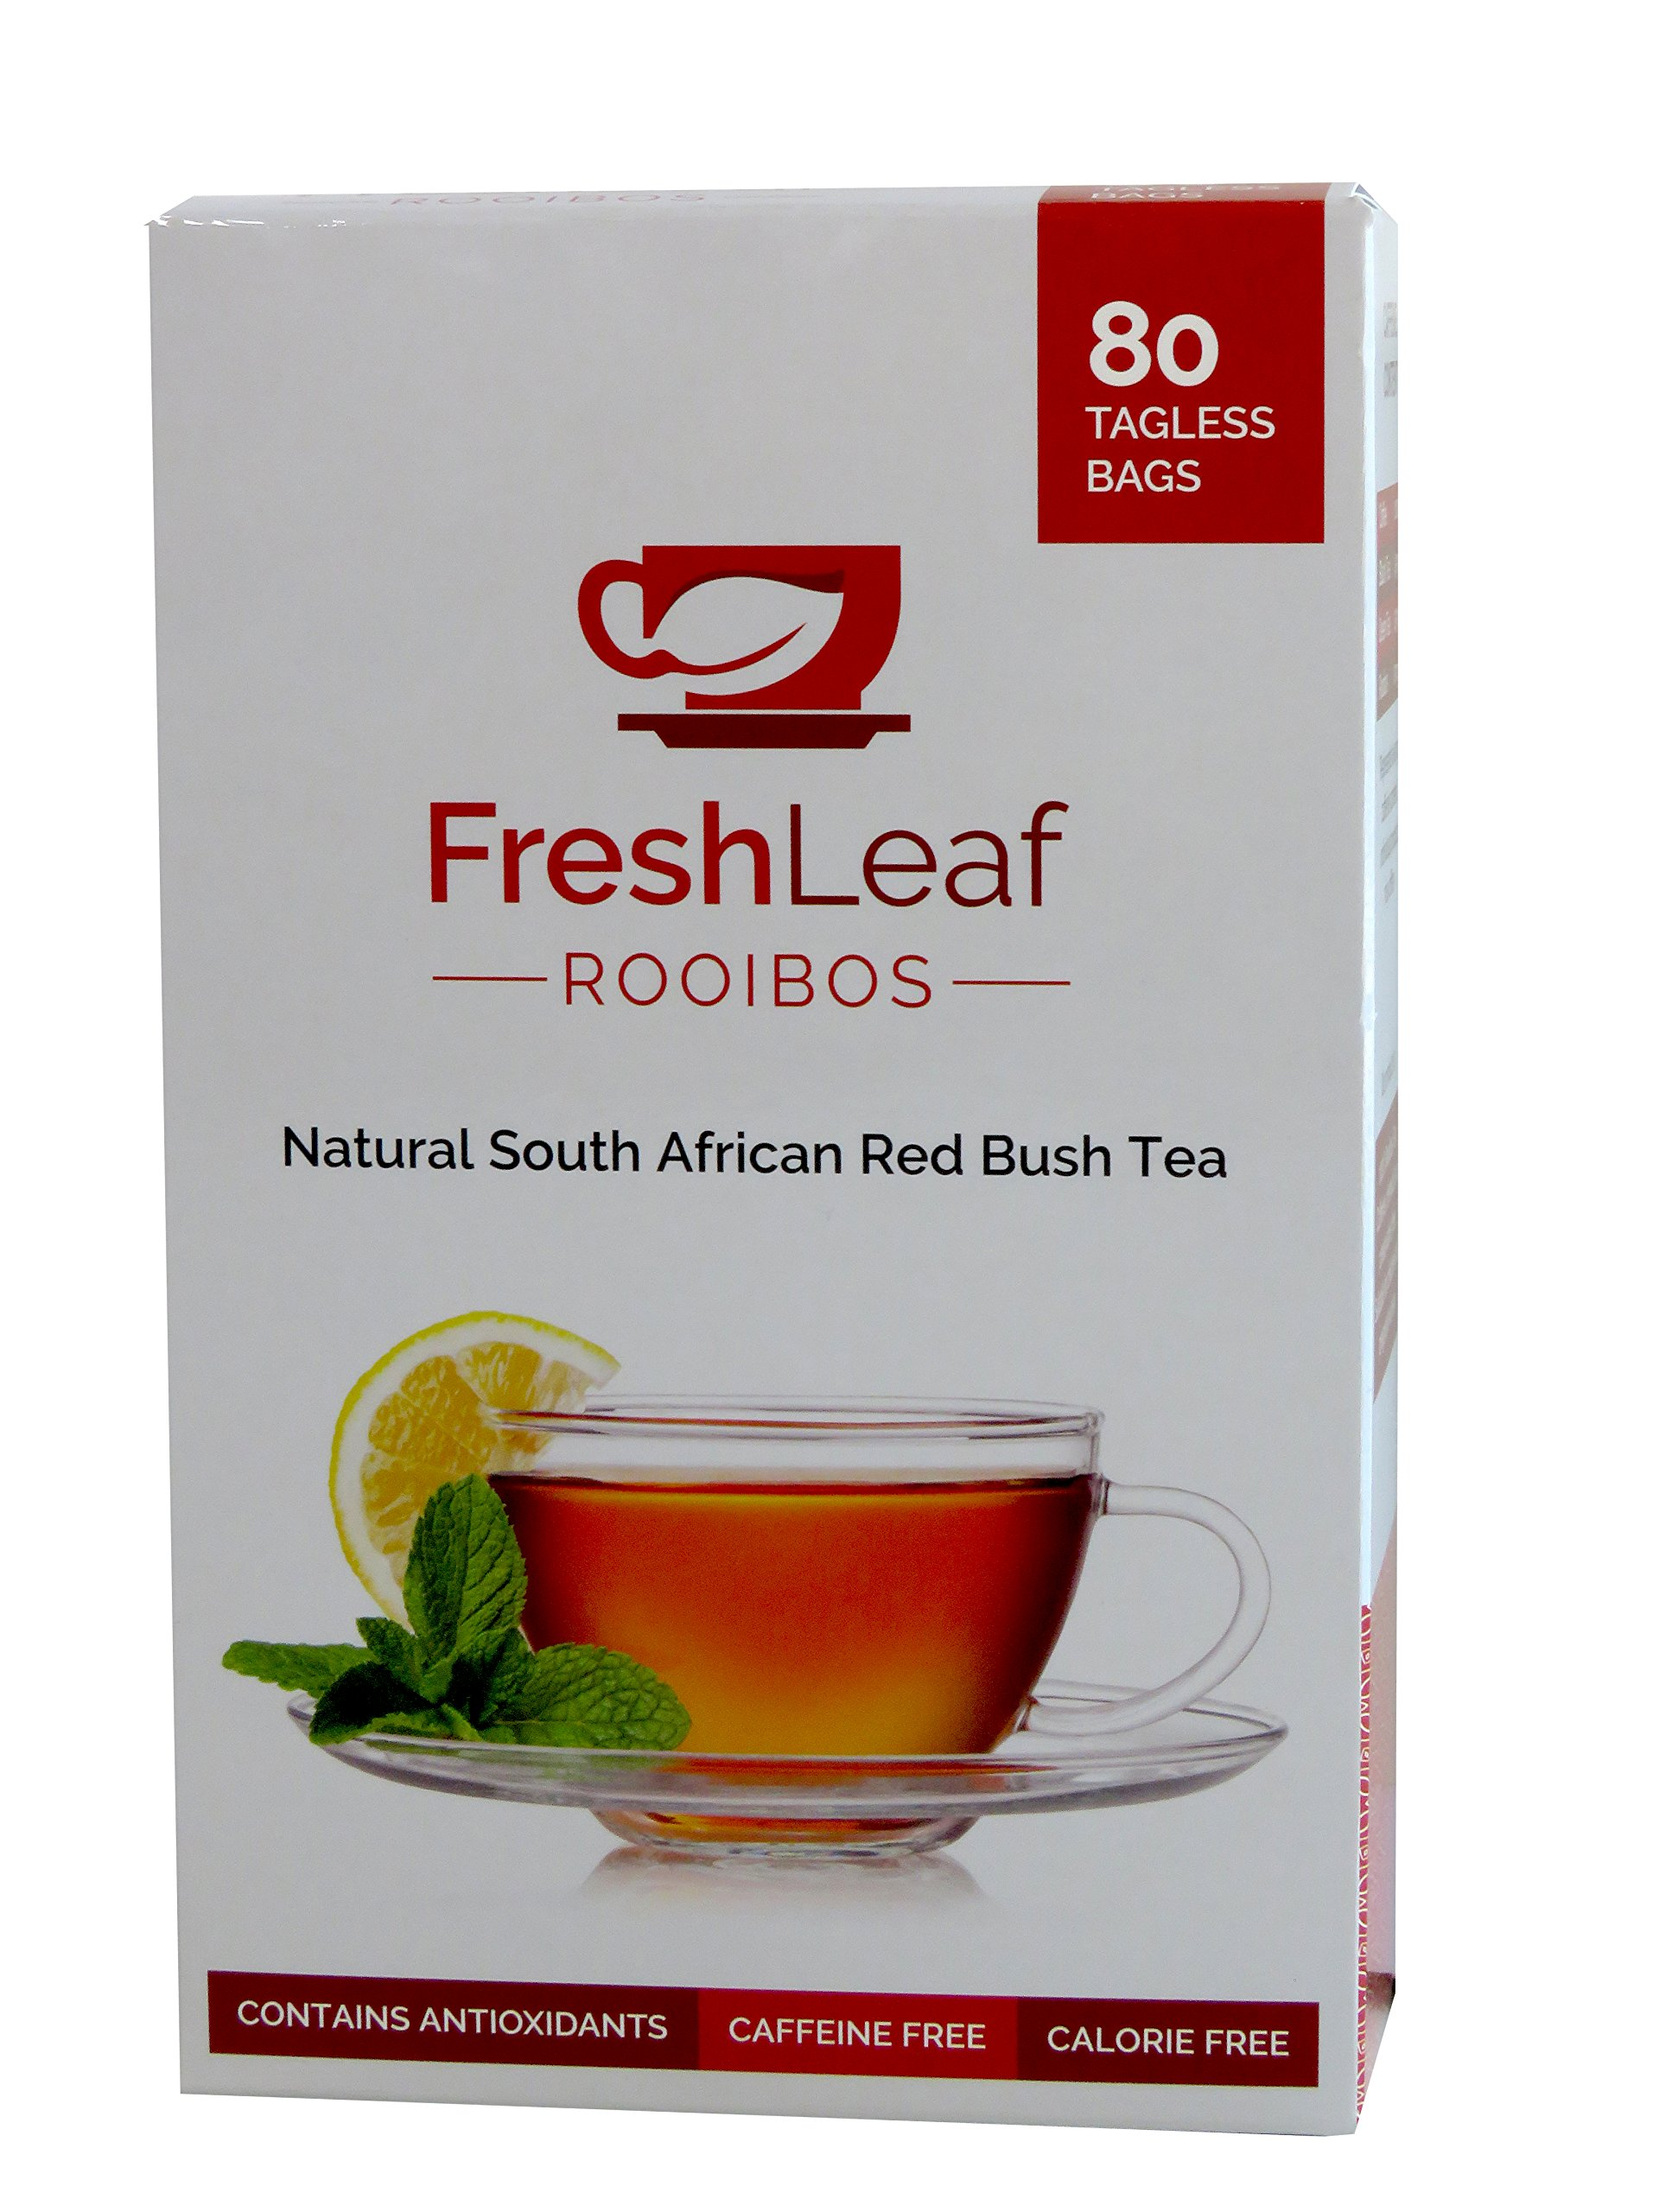 FRESHLEAF Rooibos Tea - 80 Red Tea Bags, Red Tea Detox, 100% Pure South African Origin Red Tea, Caffeine & Calorie Free, Sustainably Farmed, GMO Free, Redbush Tea, Herbal Tea Drink